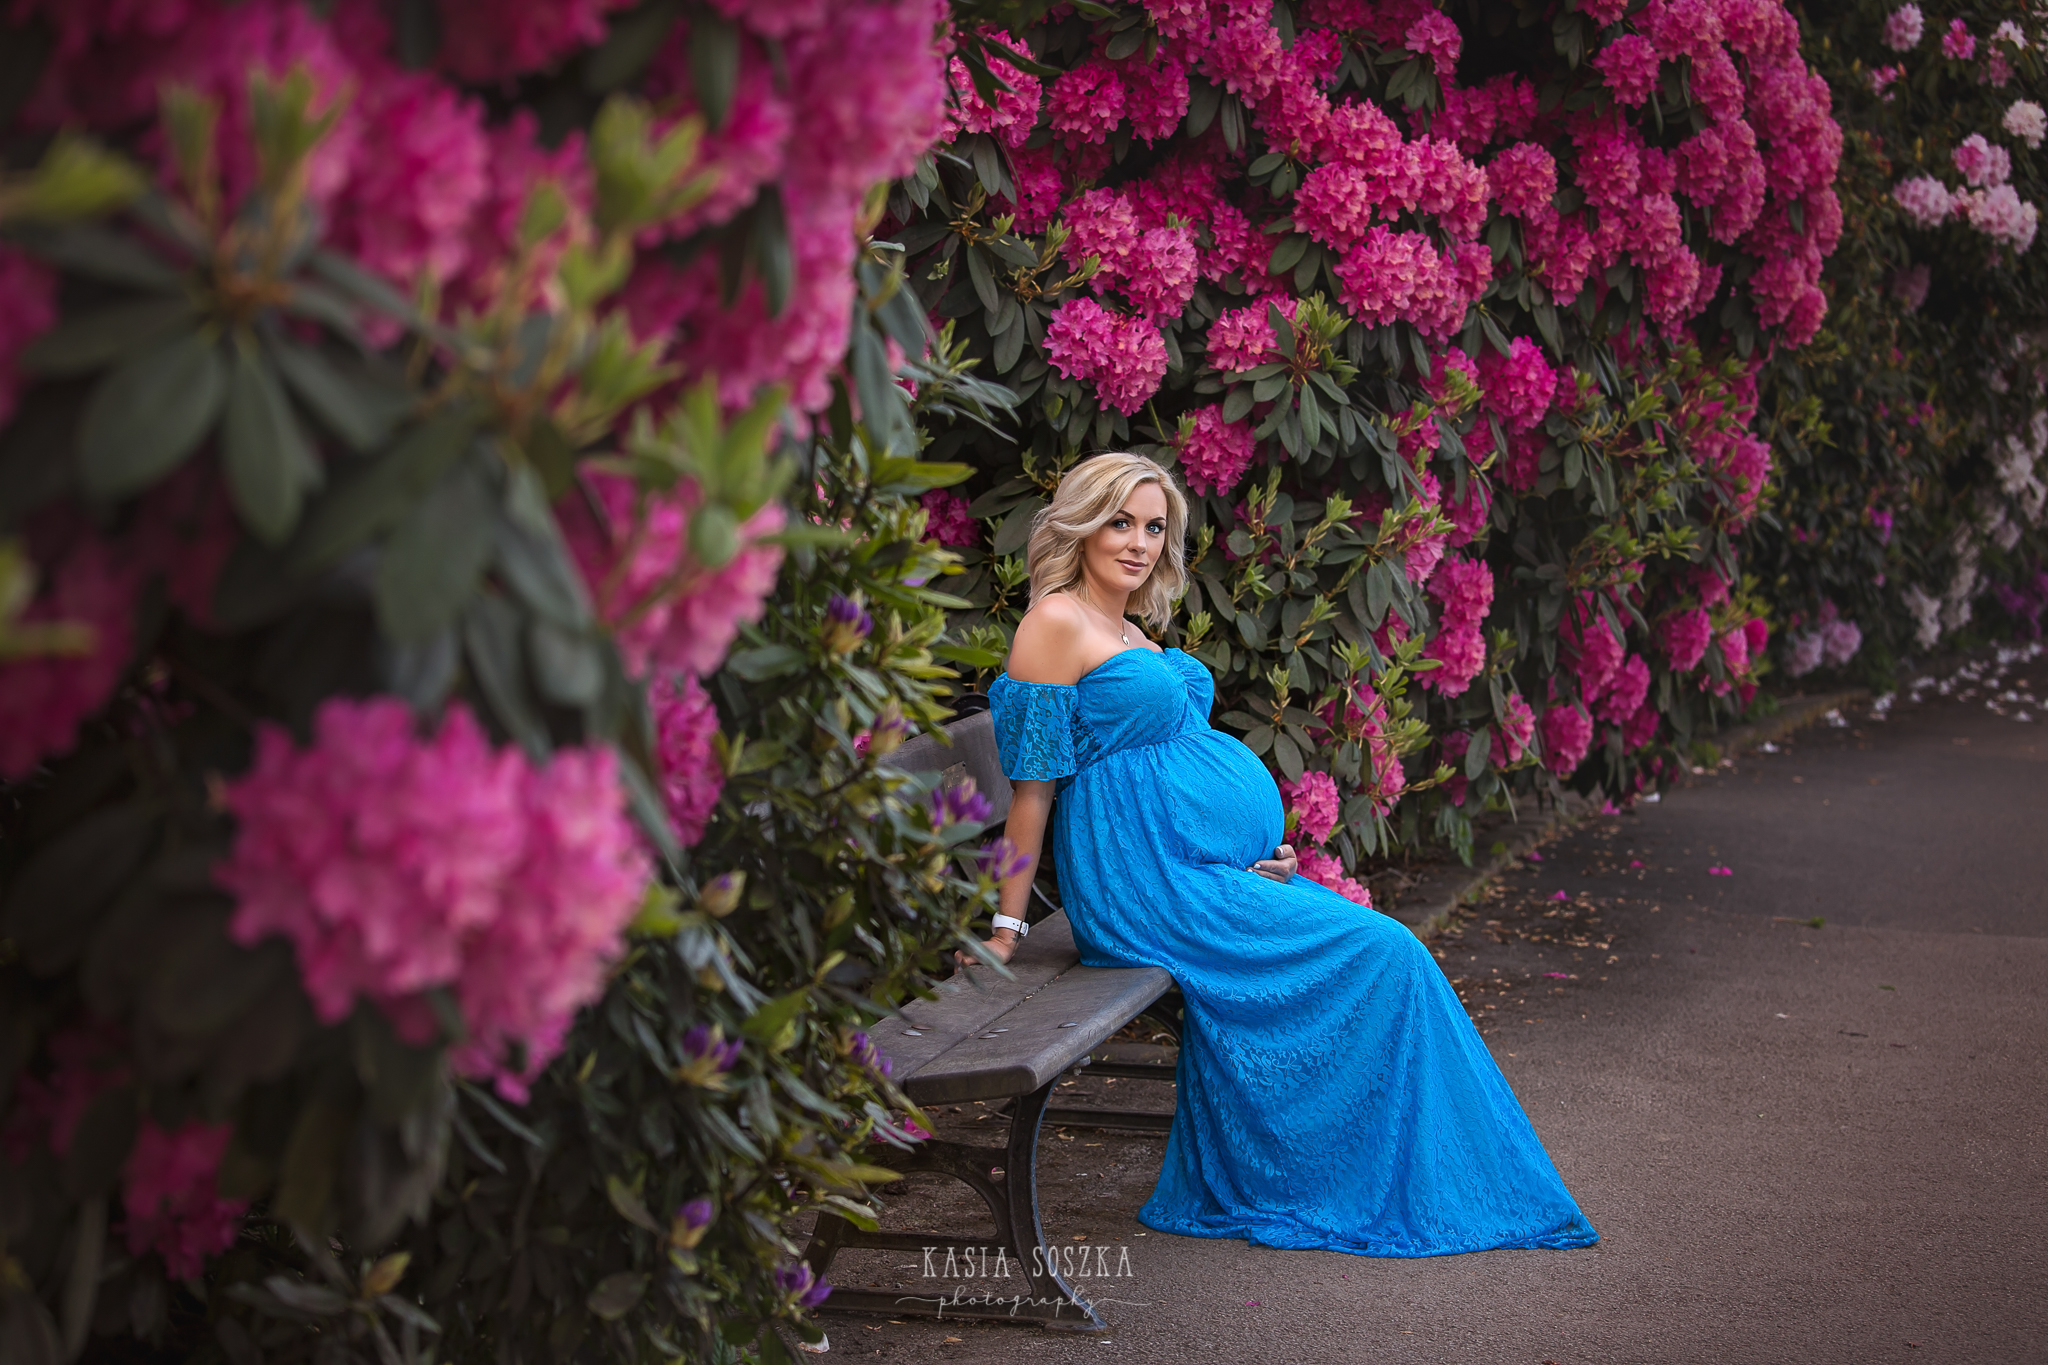 Maternity photography Leeds: beautiful blond pregnant woman in a long blue dress sitting on a bench in a garden full of pink flowers.